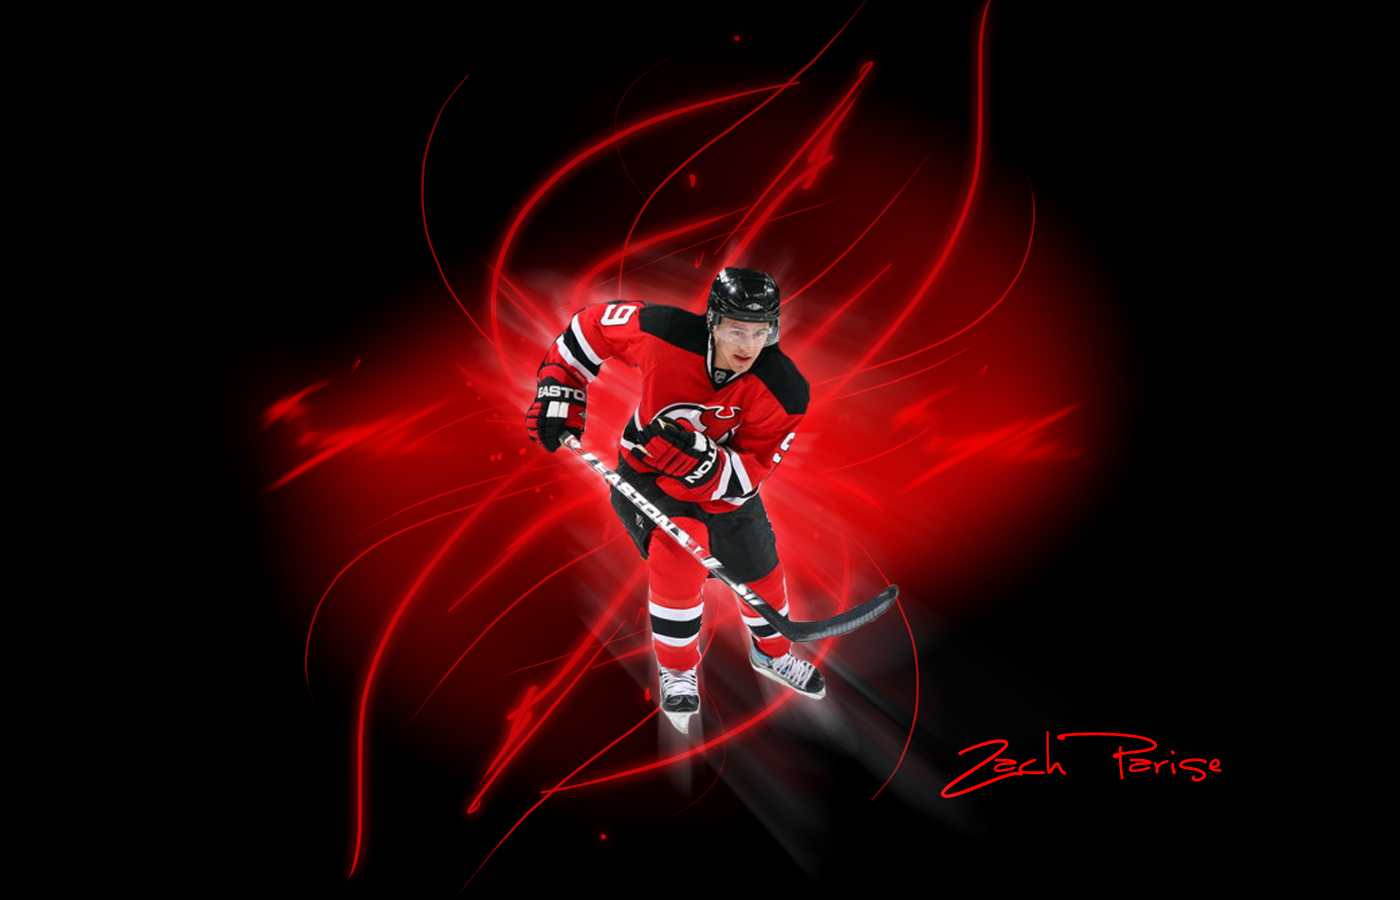 The NHL images Zach Parise Wallpaper HD wallpaper and background 1400x900